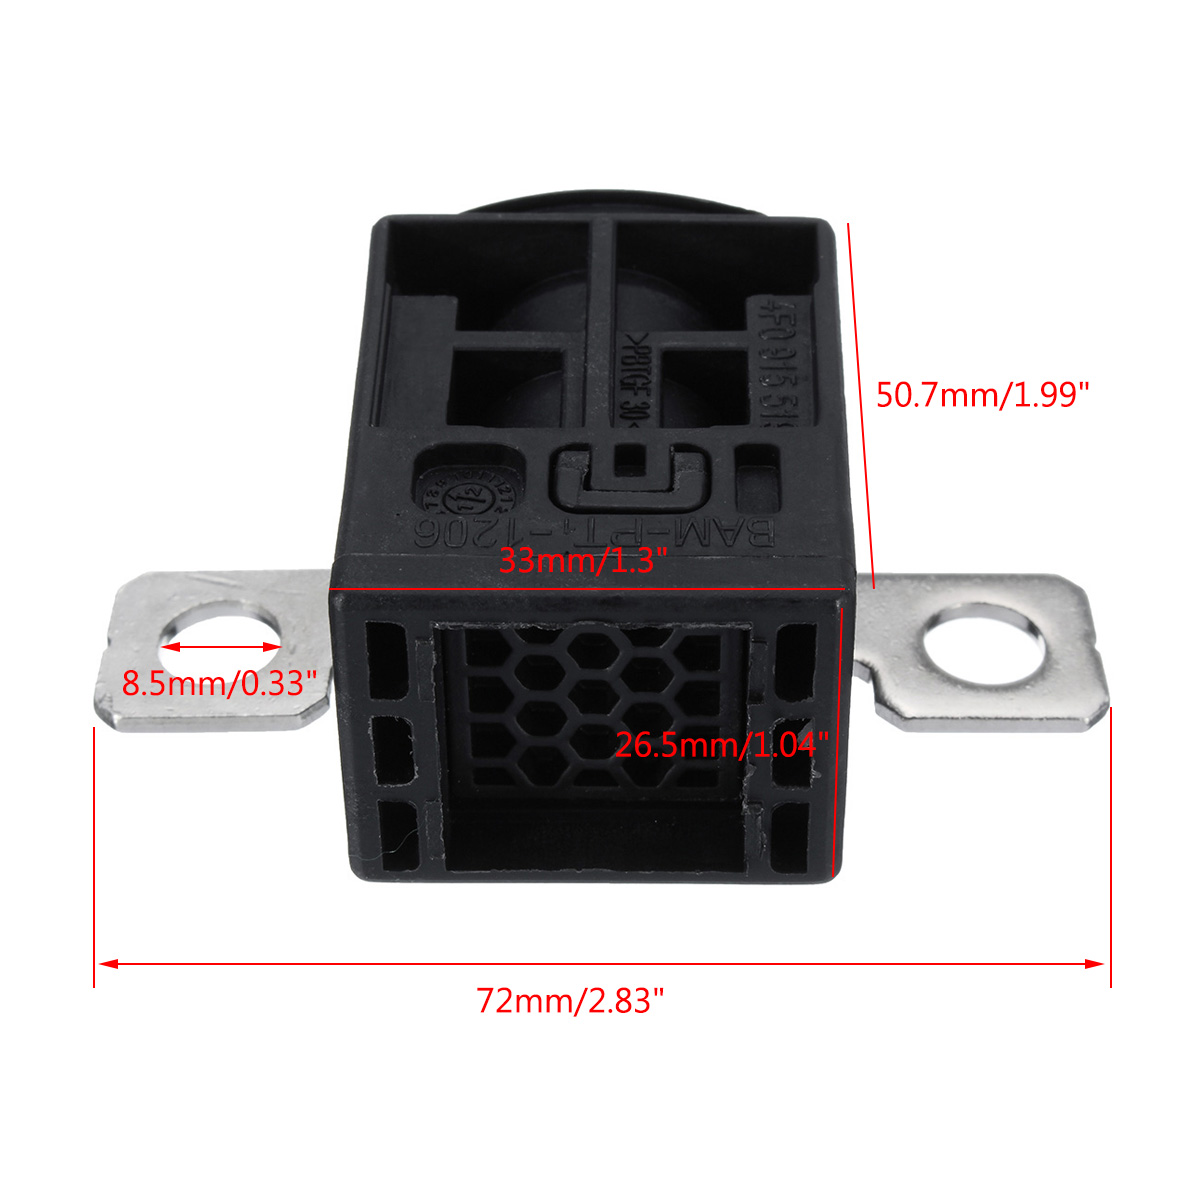 hight resolution of 4f0915519 battery fuse box cut off overload protection trip for audi q5 a5 a7 a6